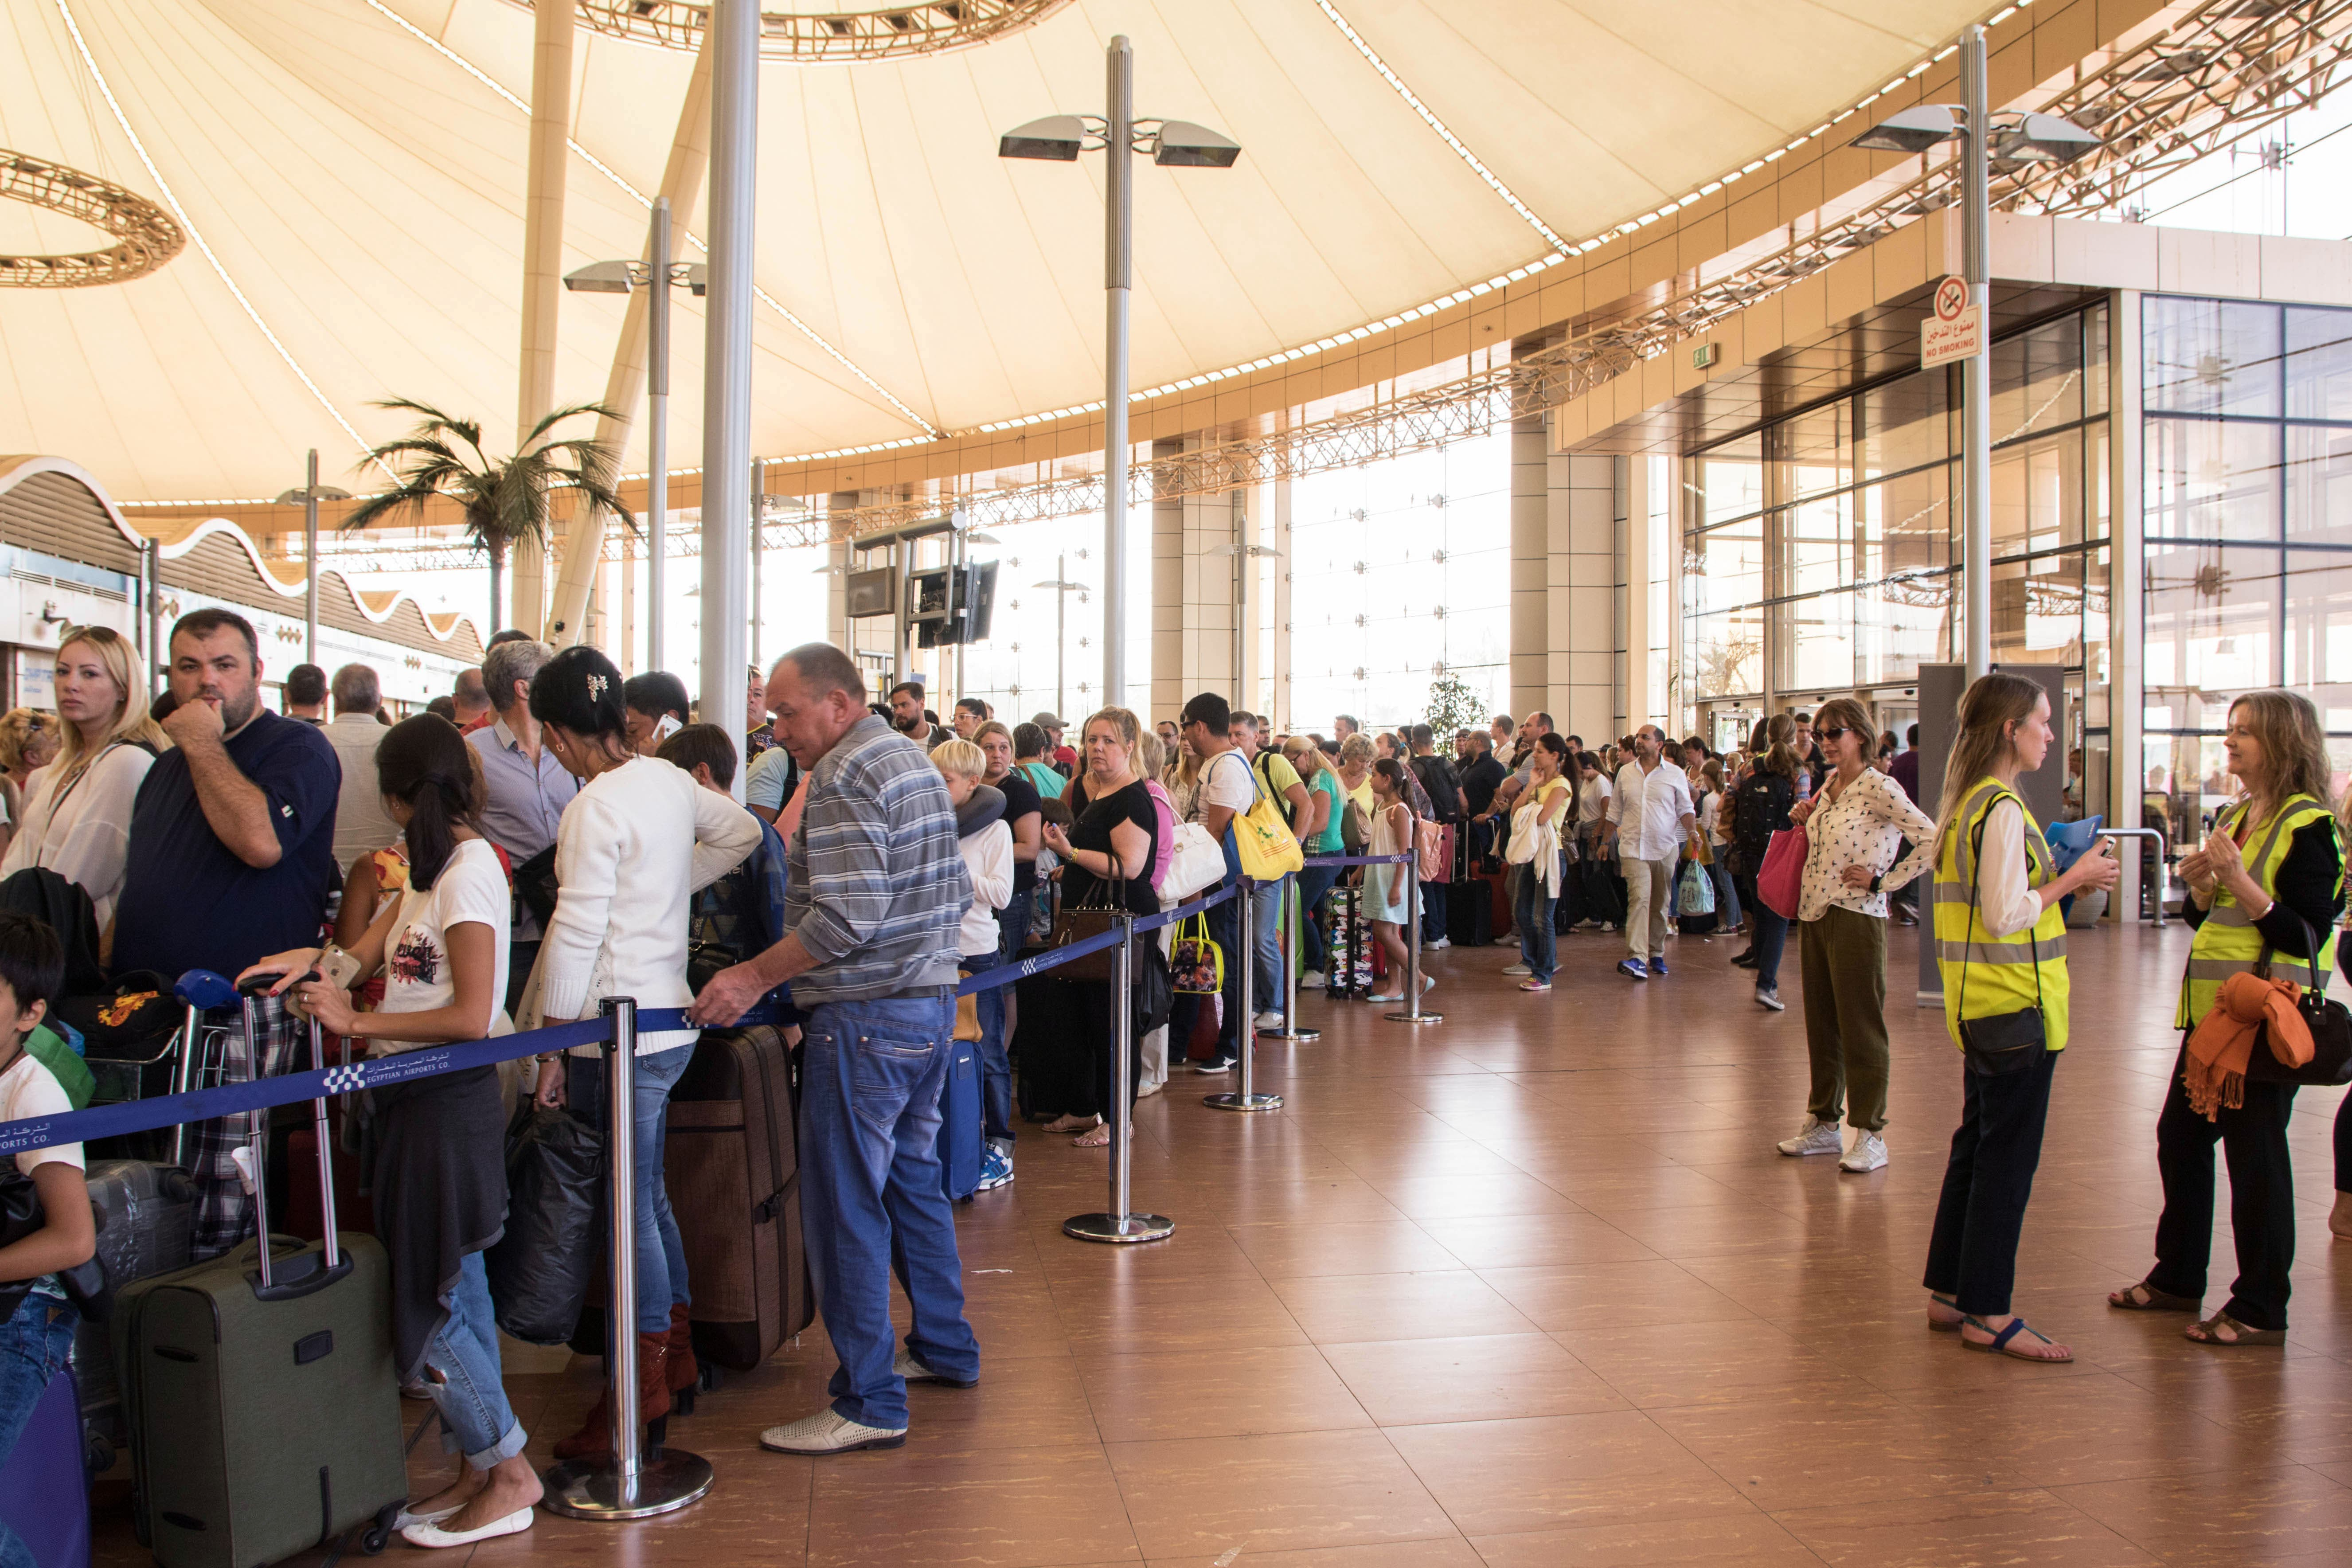 Tourists line up for luggage screening at the airport of Sharm el-Sheikh, Egypt, on Saturday, Nov. 7, 2015. London approved the resumption of British flights to Sinai starting Friday and planned a wave of flights to retrieve its stranded nationals, but it banned passengers from checking luggage on the flights. Instead, any checked-in bags were to be brought later on cargo planes. (AP Photo/Vinciane Jacquet)